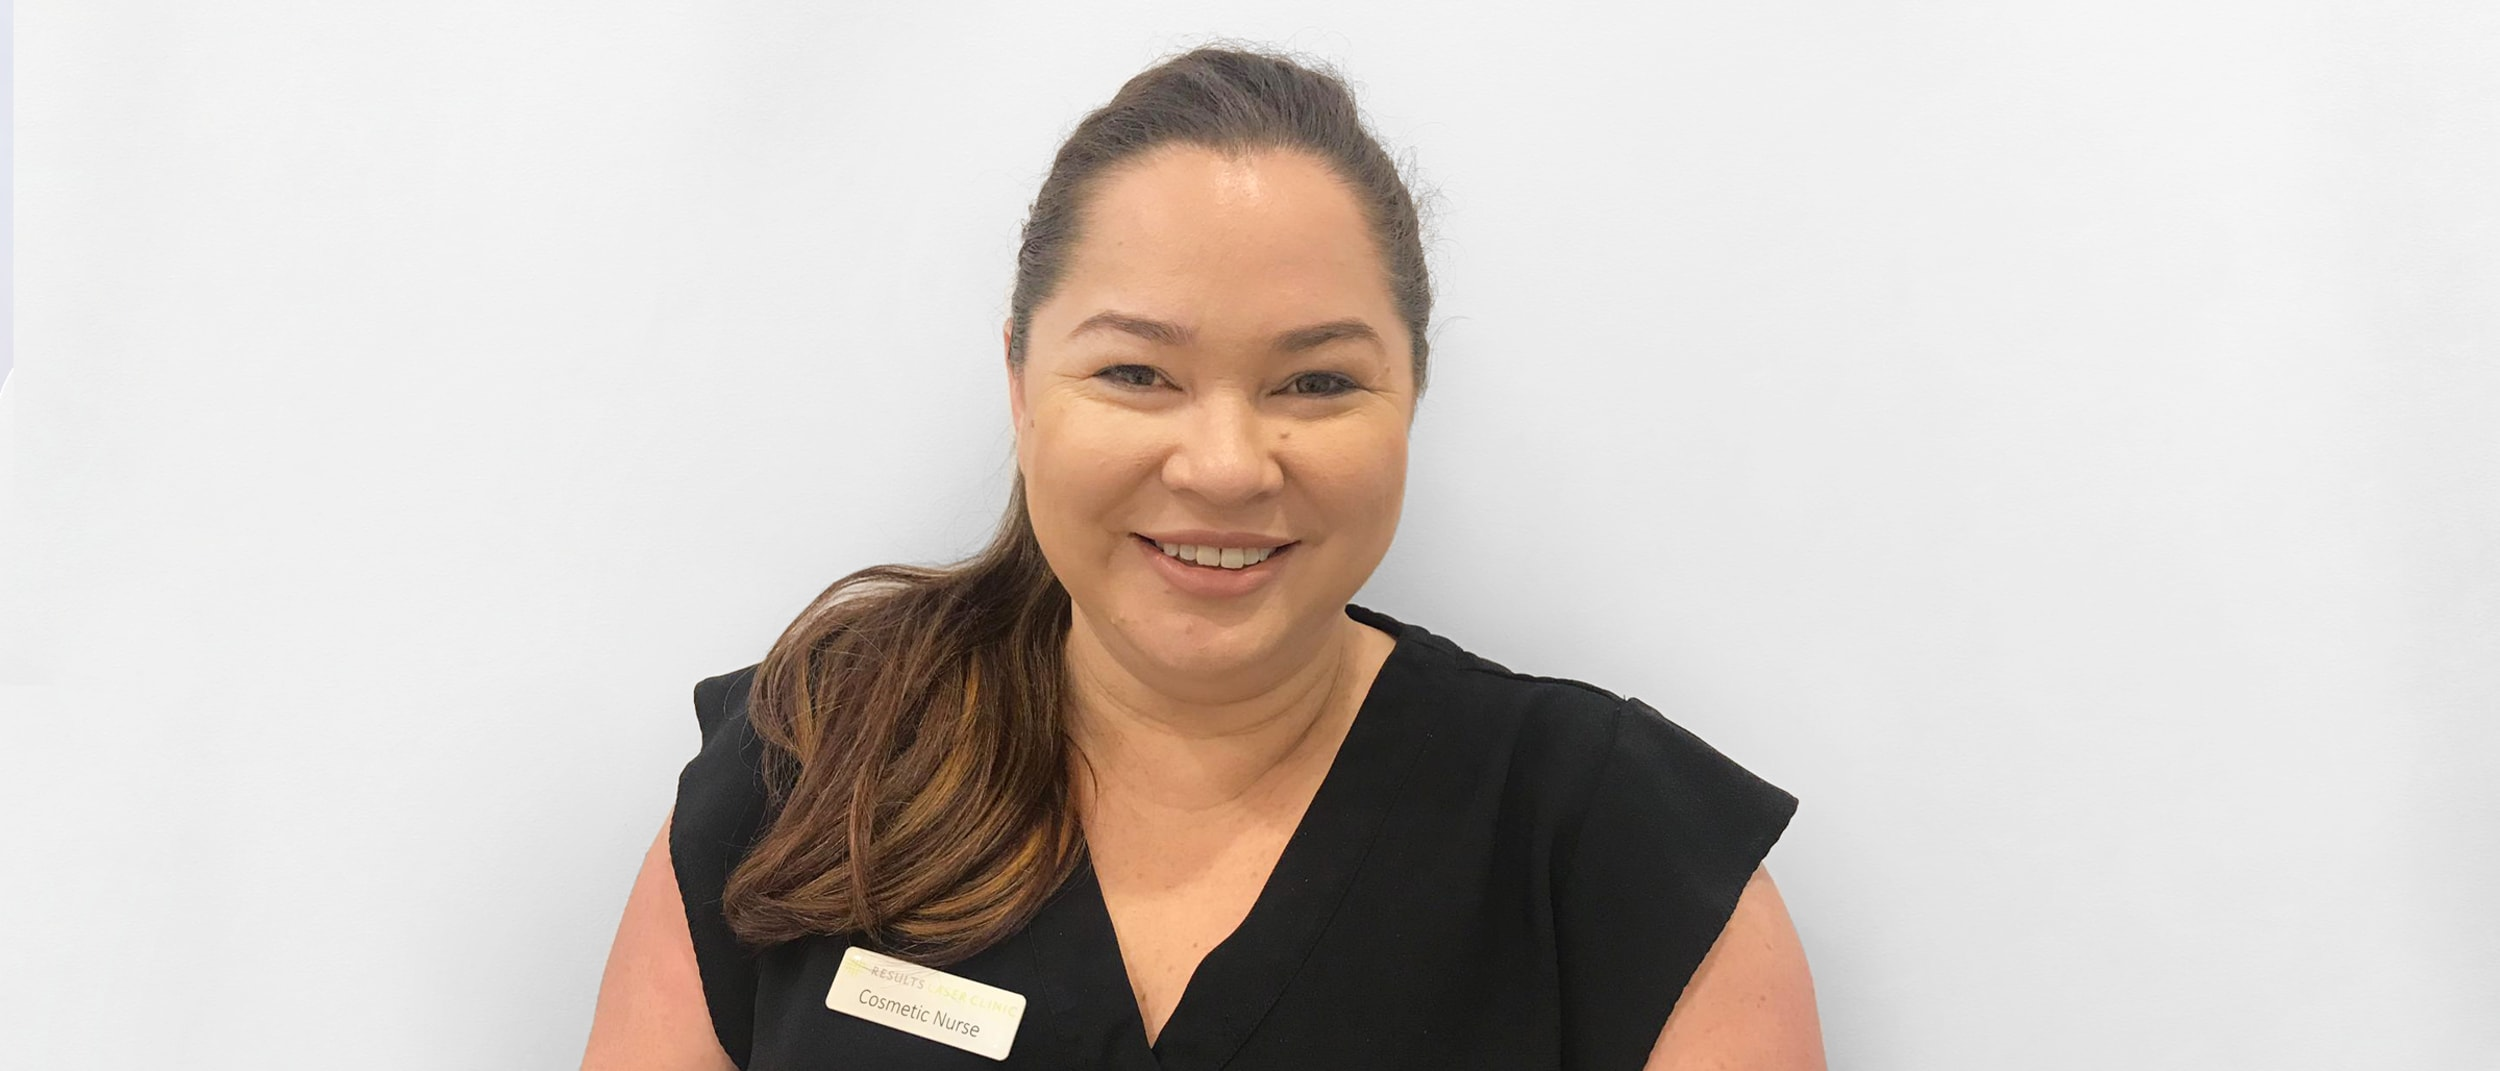 Results Laser Clinic: Meet our Cosmetic Nurse Arlene